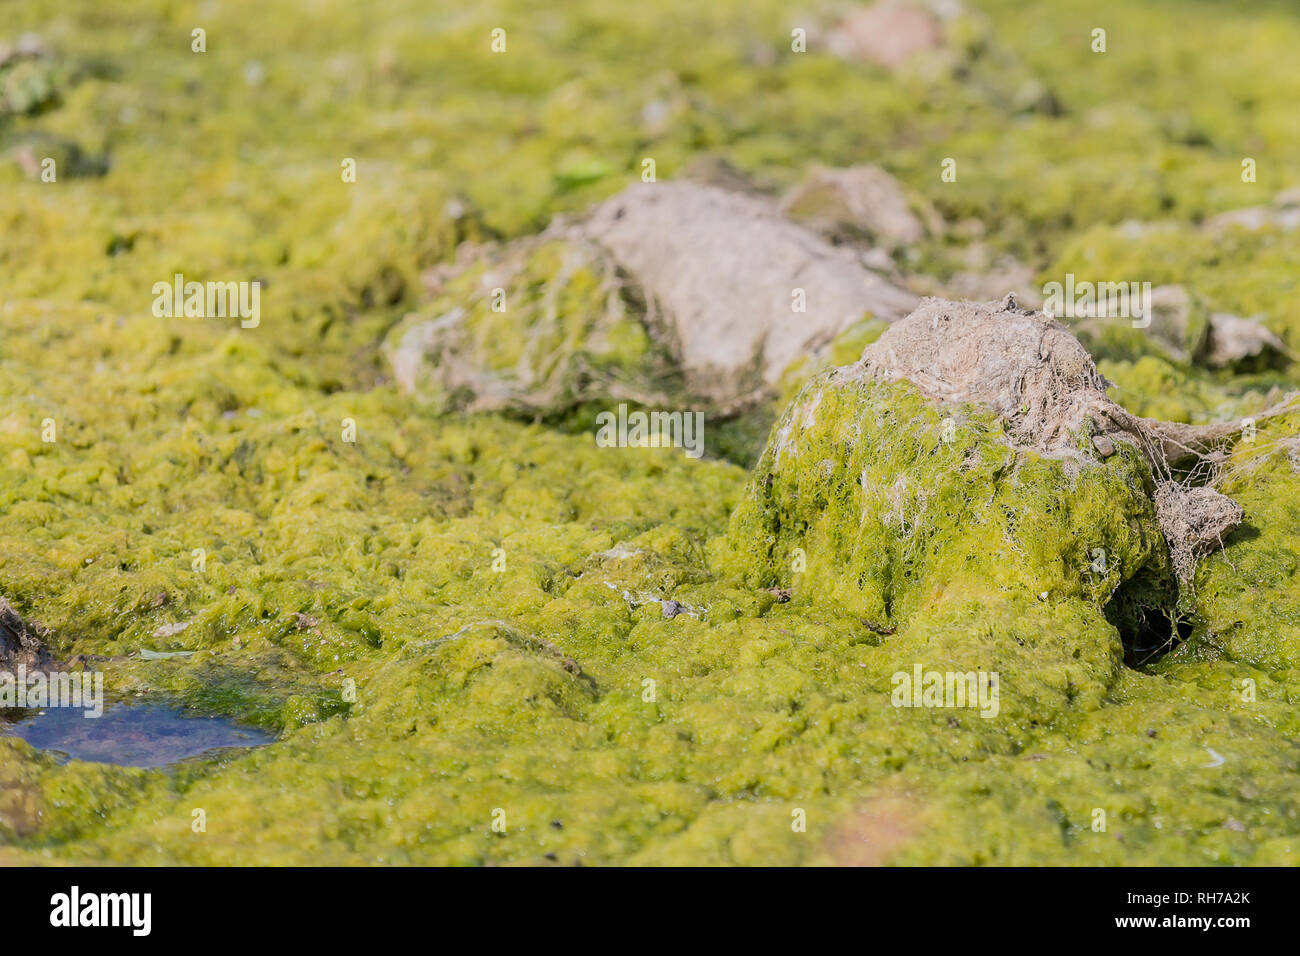 image of standing water with algae bloom on the surface of the water surrounding a stone in a river on a sunny day - Stock Image